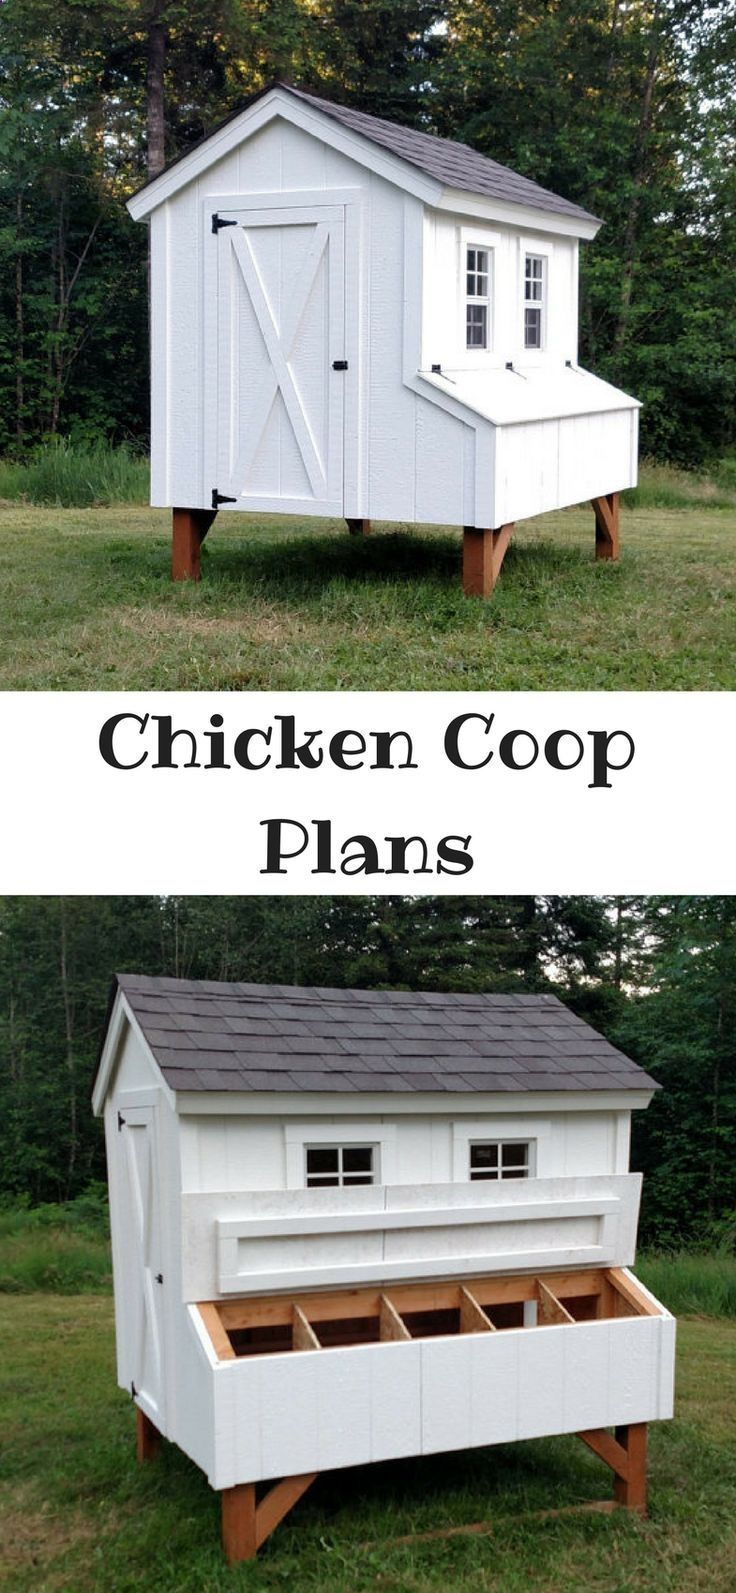 Chicken Coop Beautiful And Functional Chicken Coop For Your Urban Back Yard Or Your Modern Homestead I Portable Chicken Coop Cute Chicken Coops Chicken Coop Backyard chicken coop plans pdf